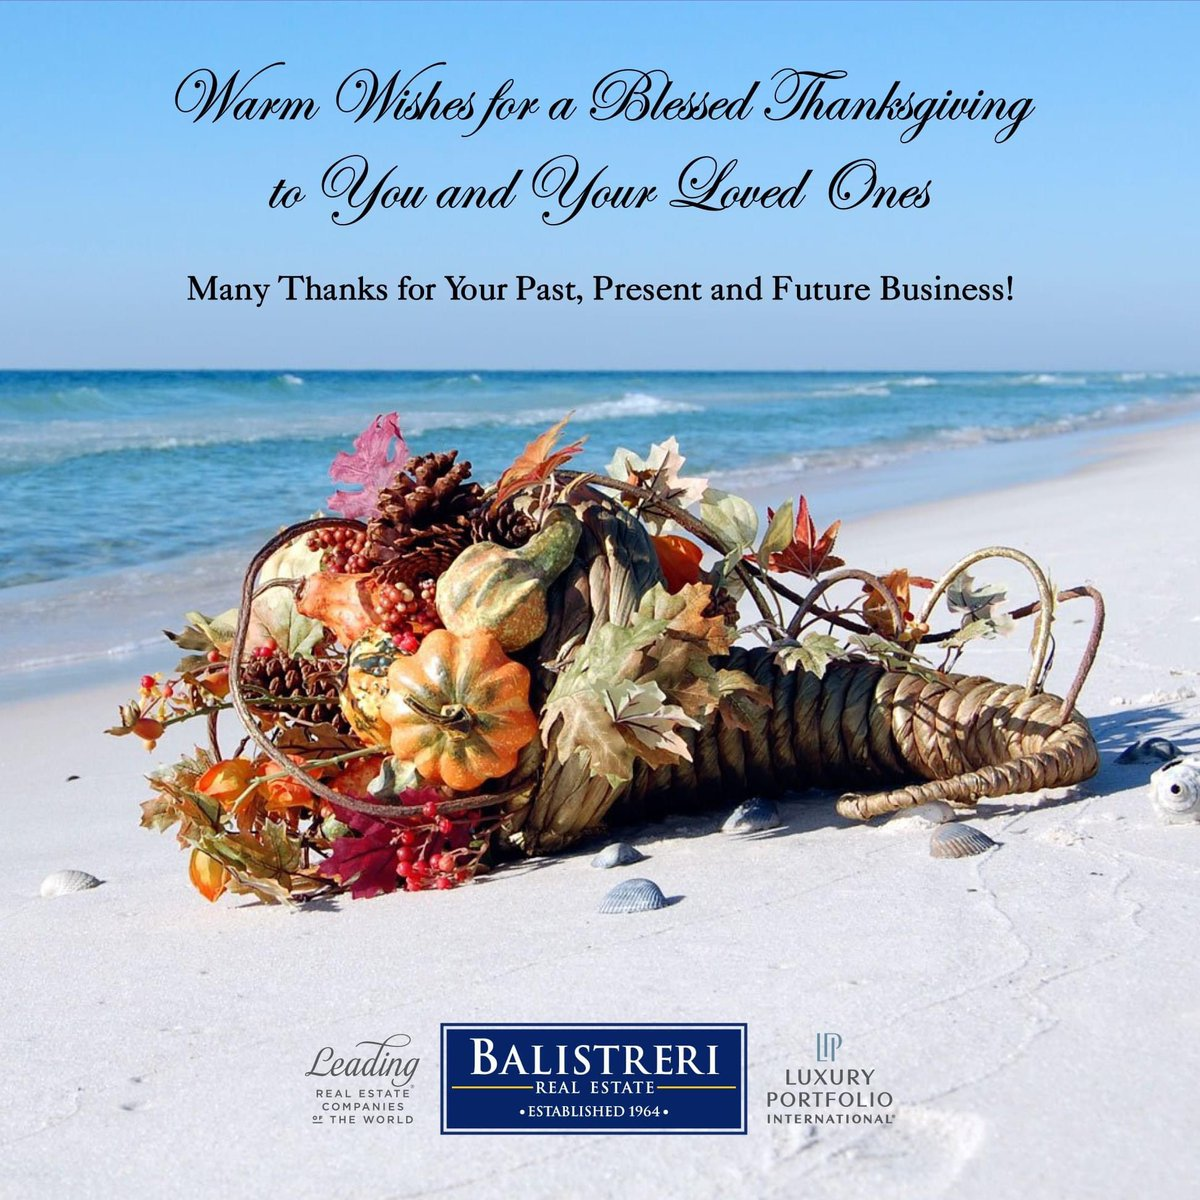 Happy Thanksgiving from Balistreri Real Estate! #happythanksgiving #gratefulheart #thankful #balistreri